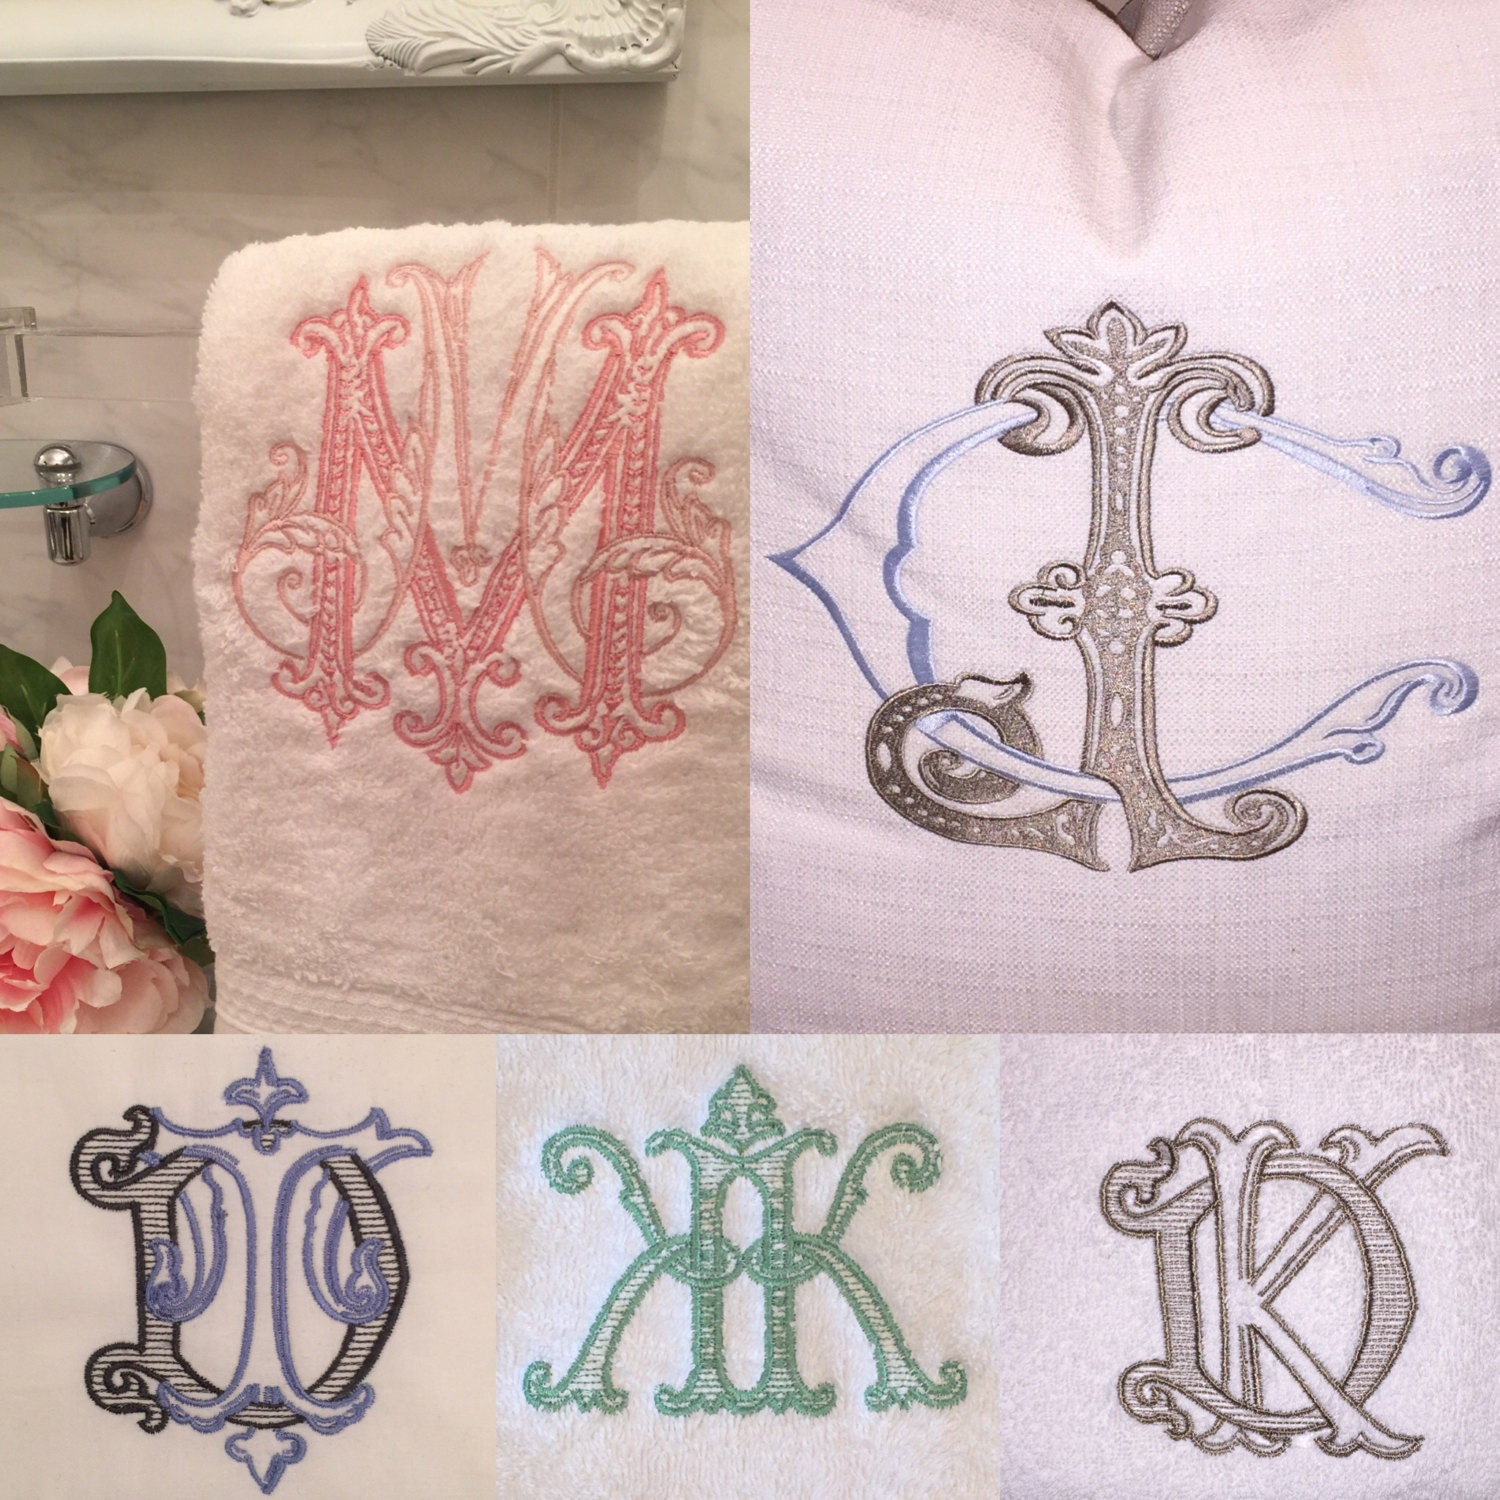 Embroidered Terry Cloth Hand Towels: Custom 2 Letter Monogram Embroidered TERRY Hand/Guest Towels